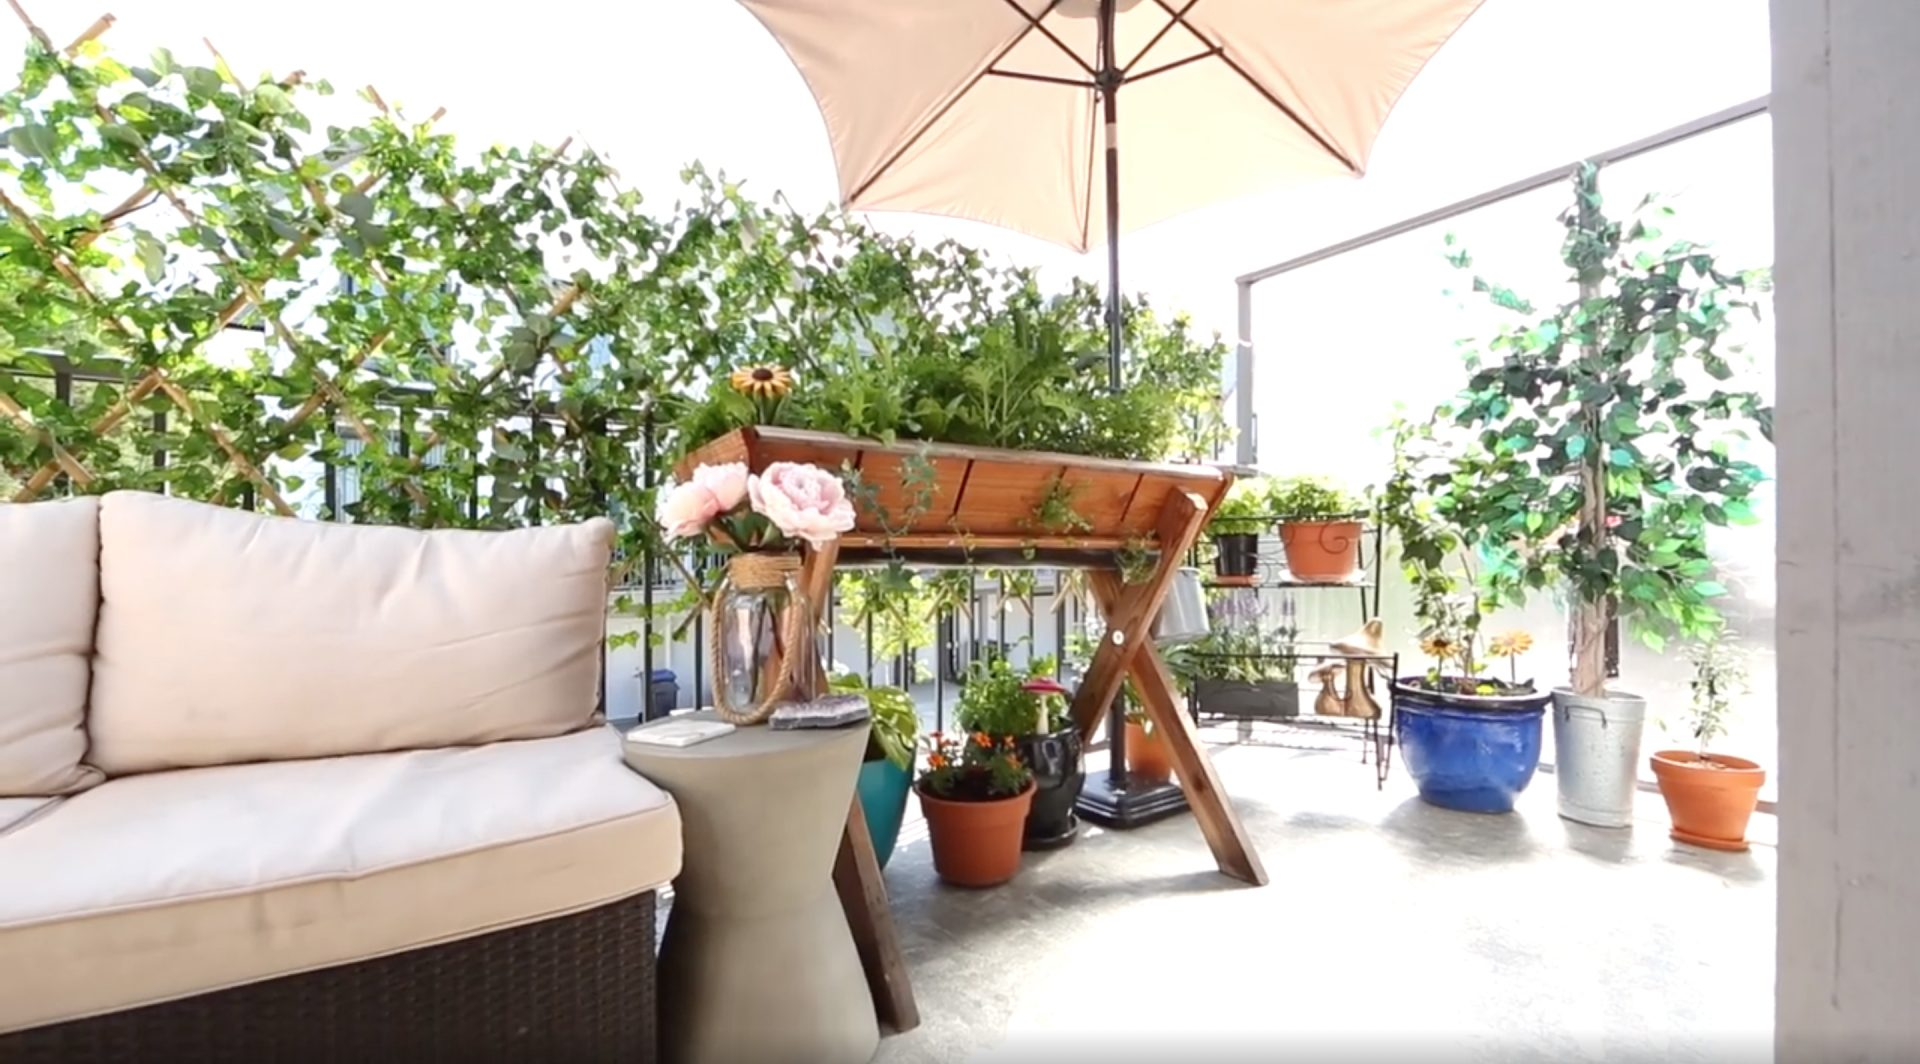 Patio in the summertime. To the left is a large sectional lounge with beige fabric cushions, middle of the frame features an above ground, wooden garden planter. There is a shade umbrella overtop of it all, and several plants to the right of the frame.